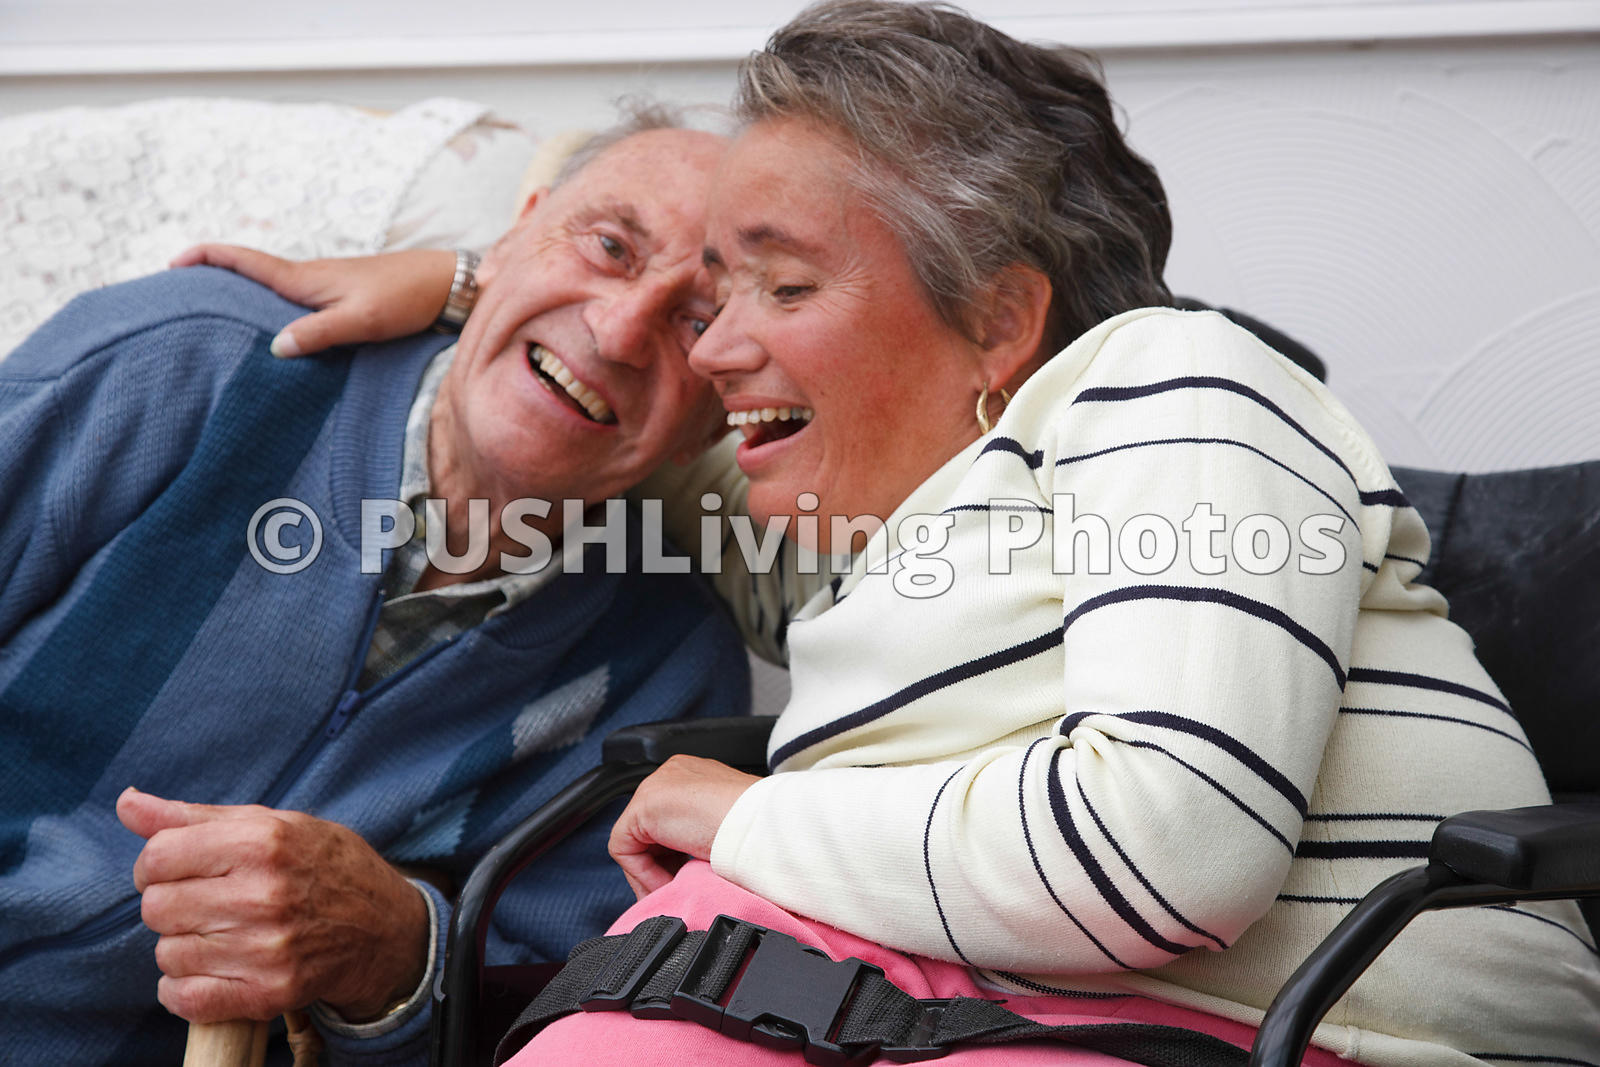 Wheelchair user with Spina Bifida laughing with and embracing her father.